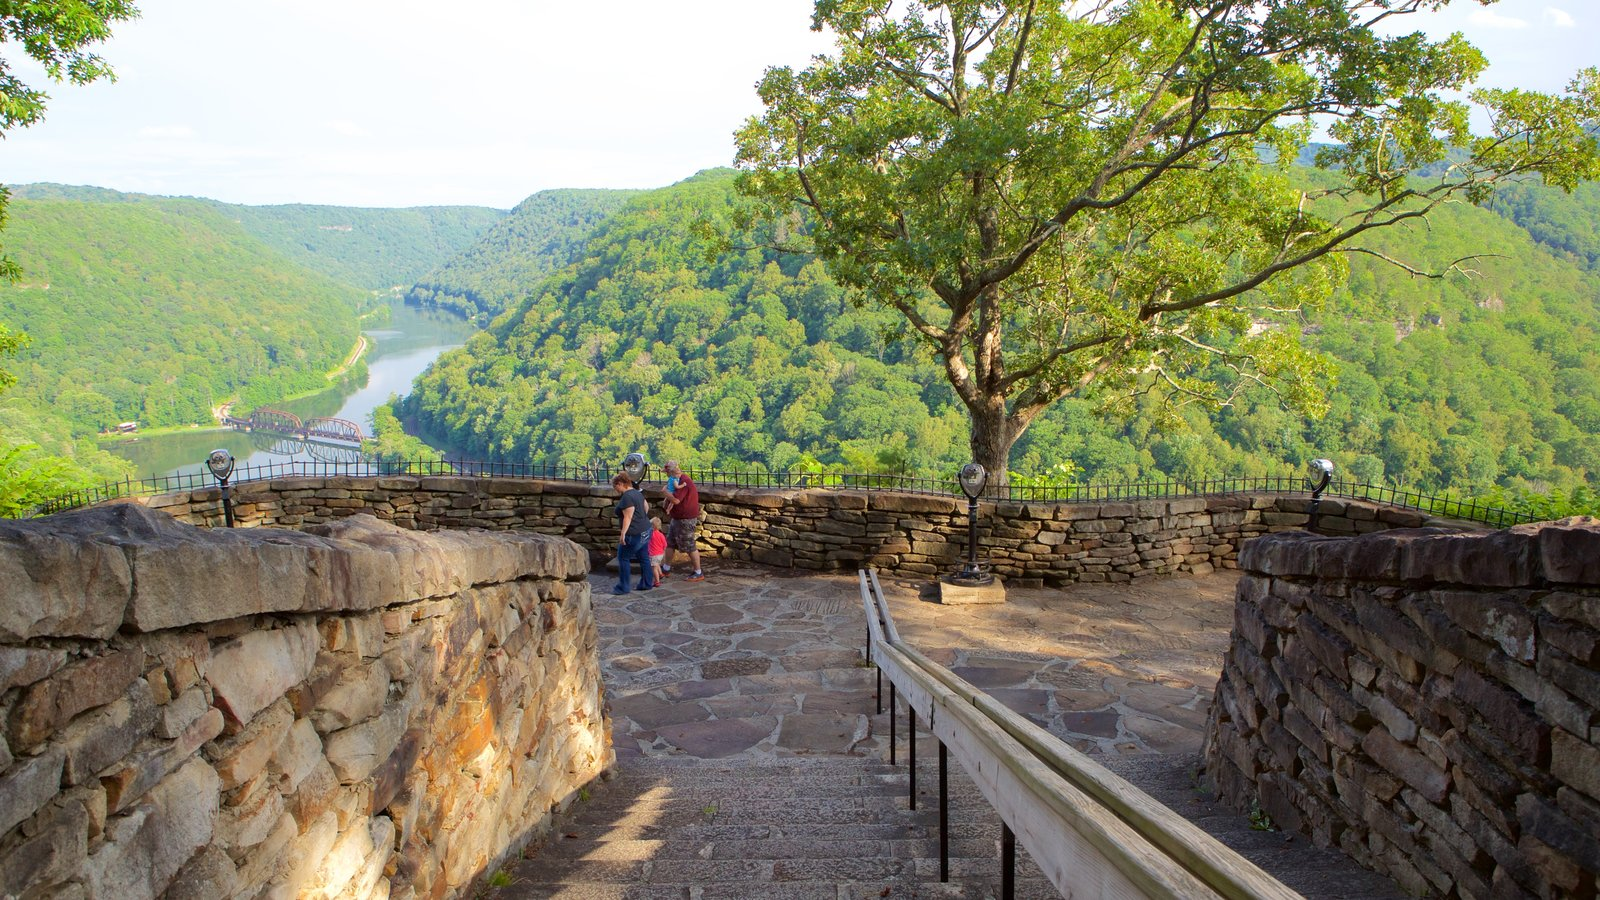 Hawks Nest State Park which includes mountains, views and tranquil scenes